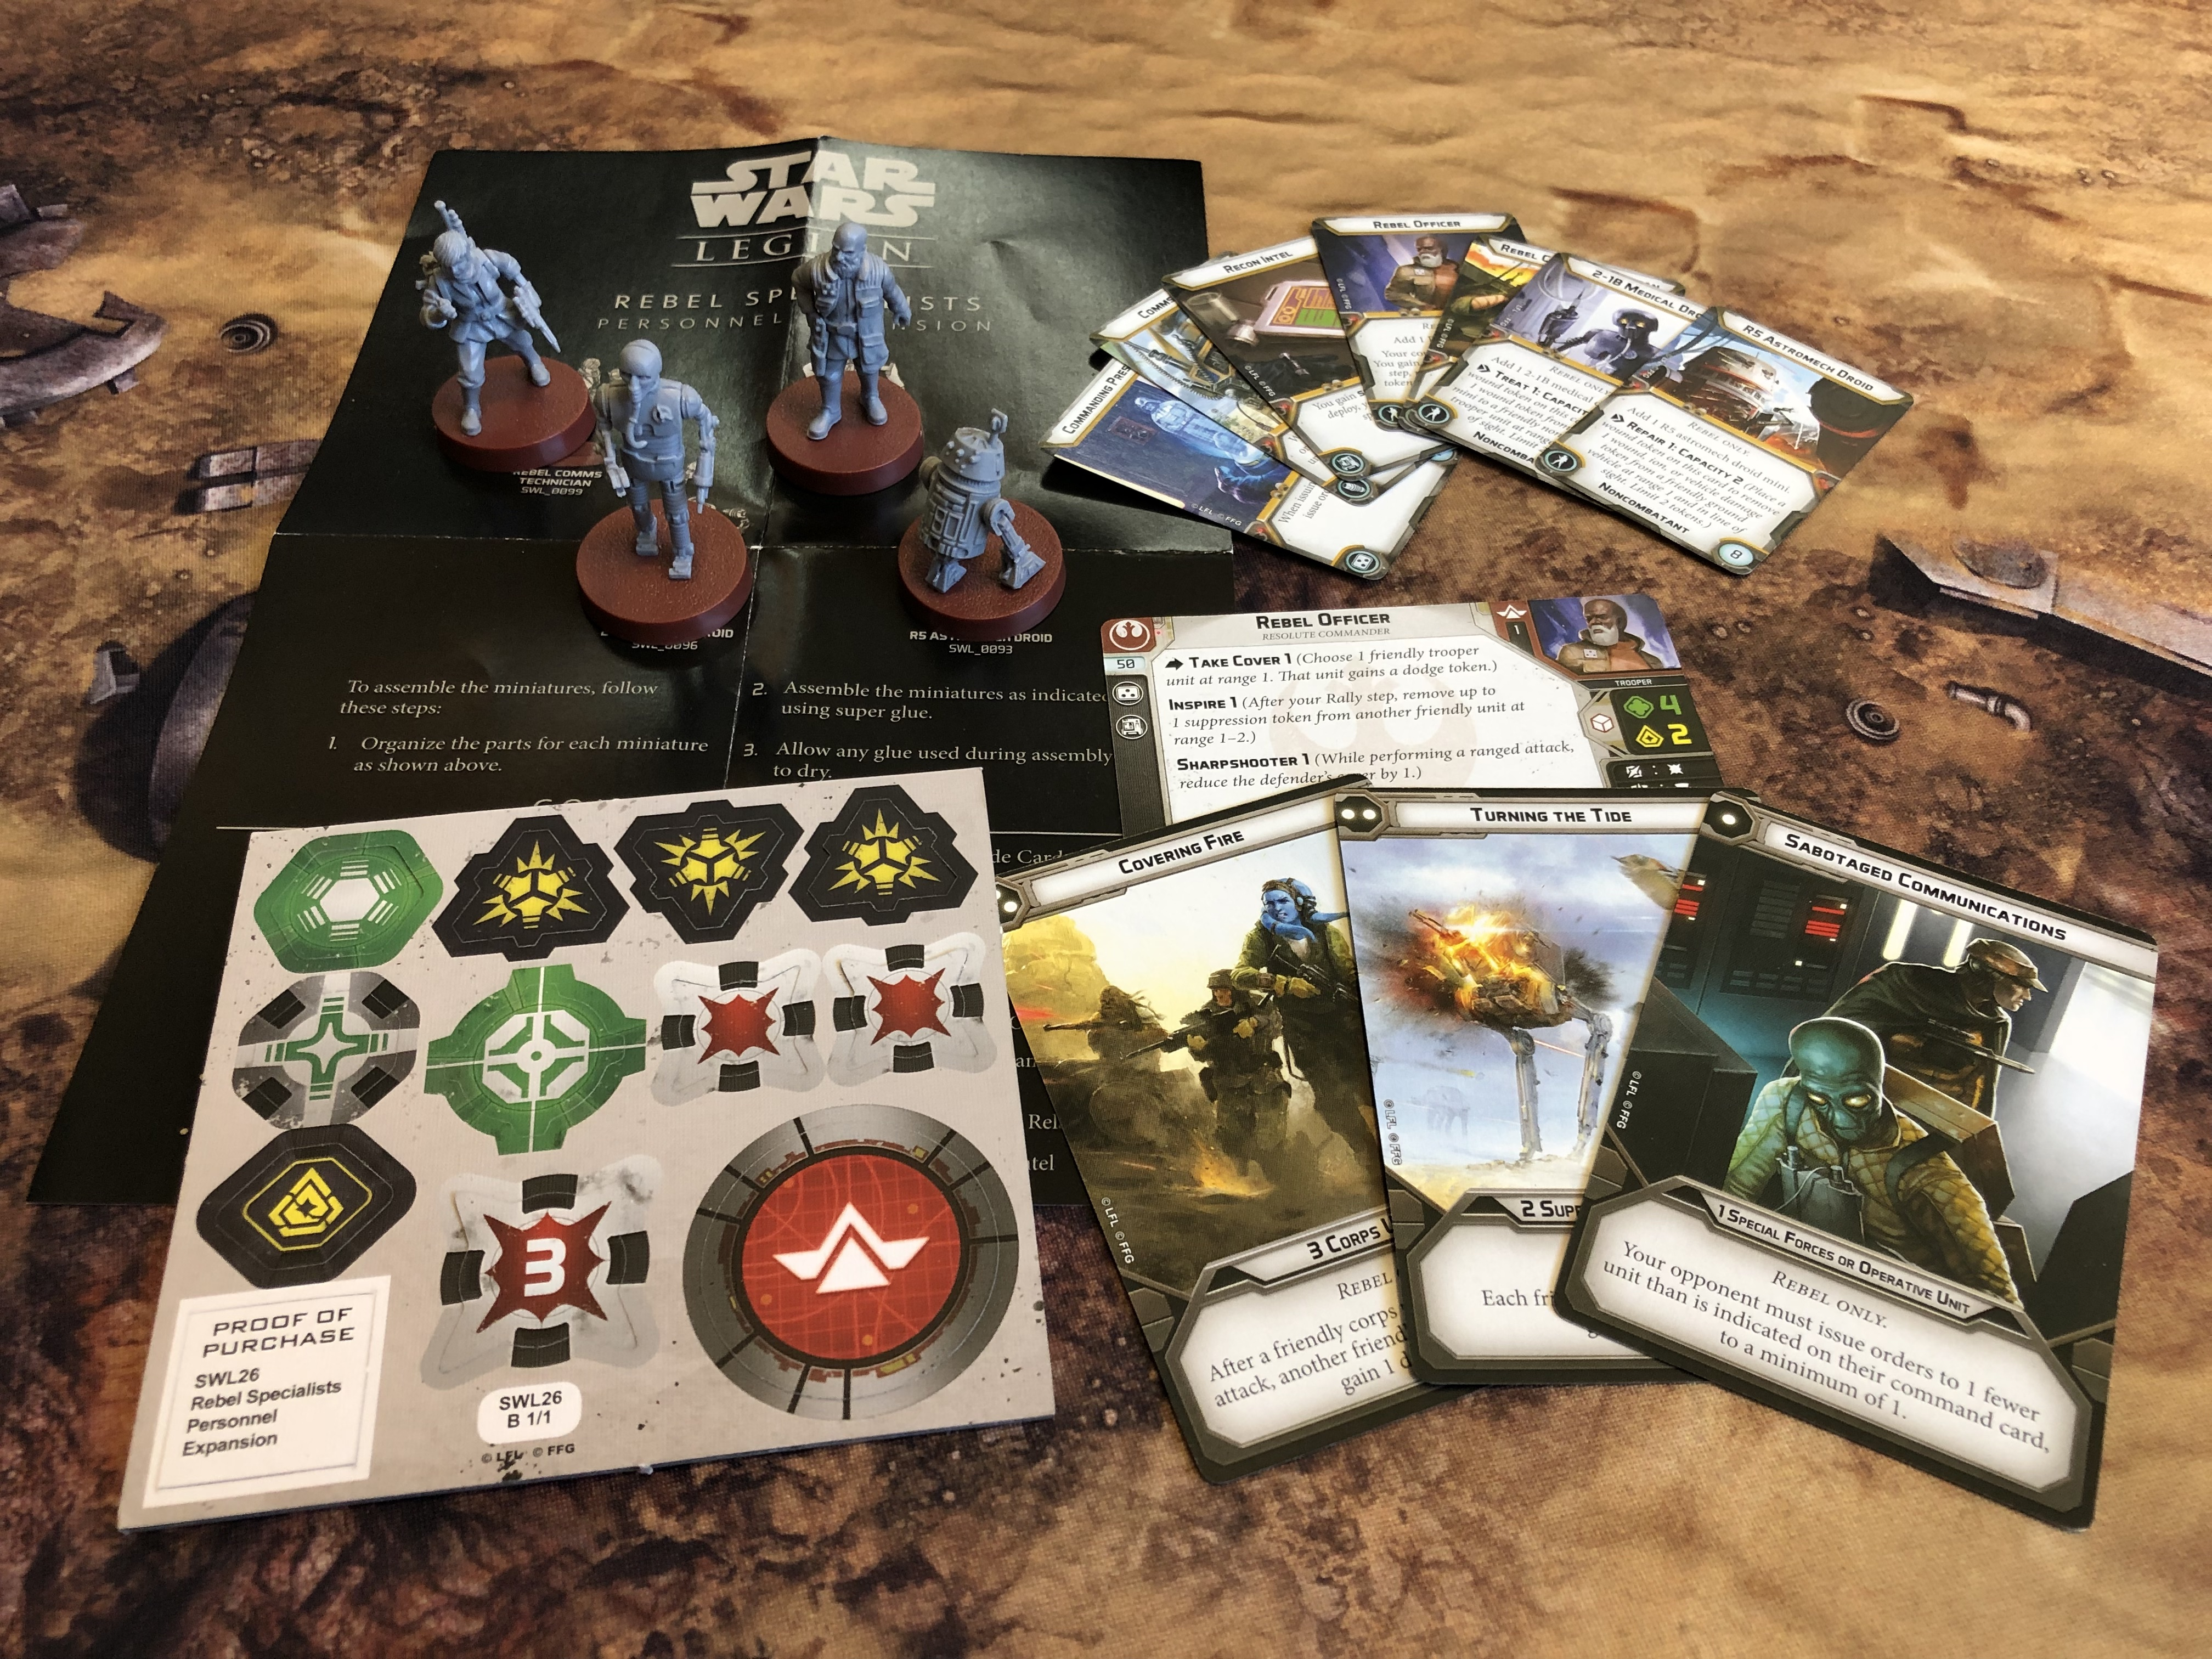 Troops for a special occasion — Star Wars: Legion Rebel and